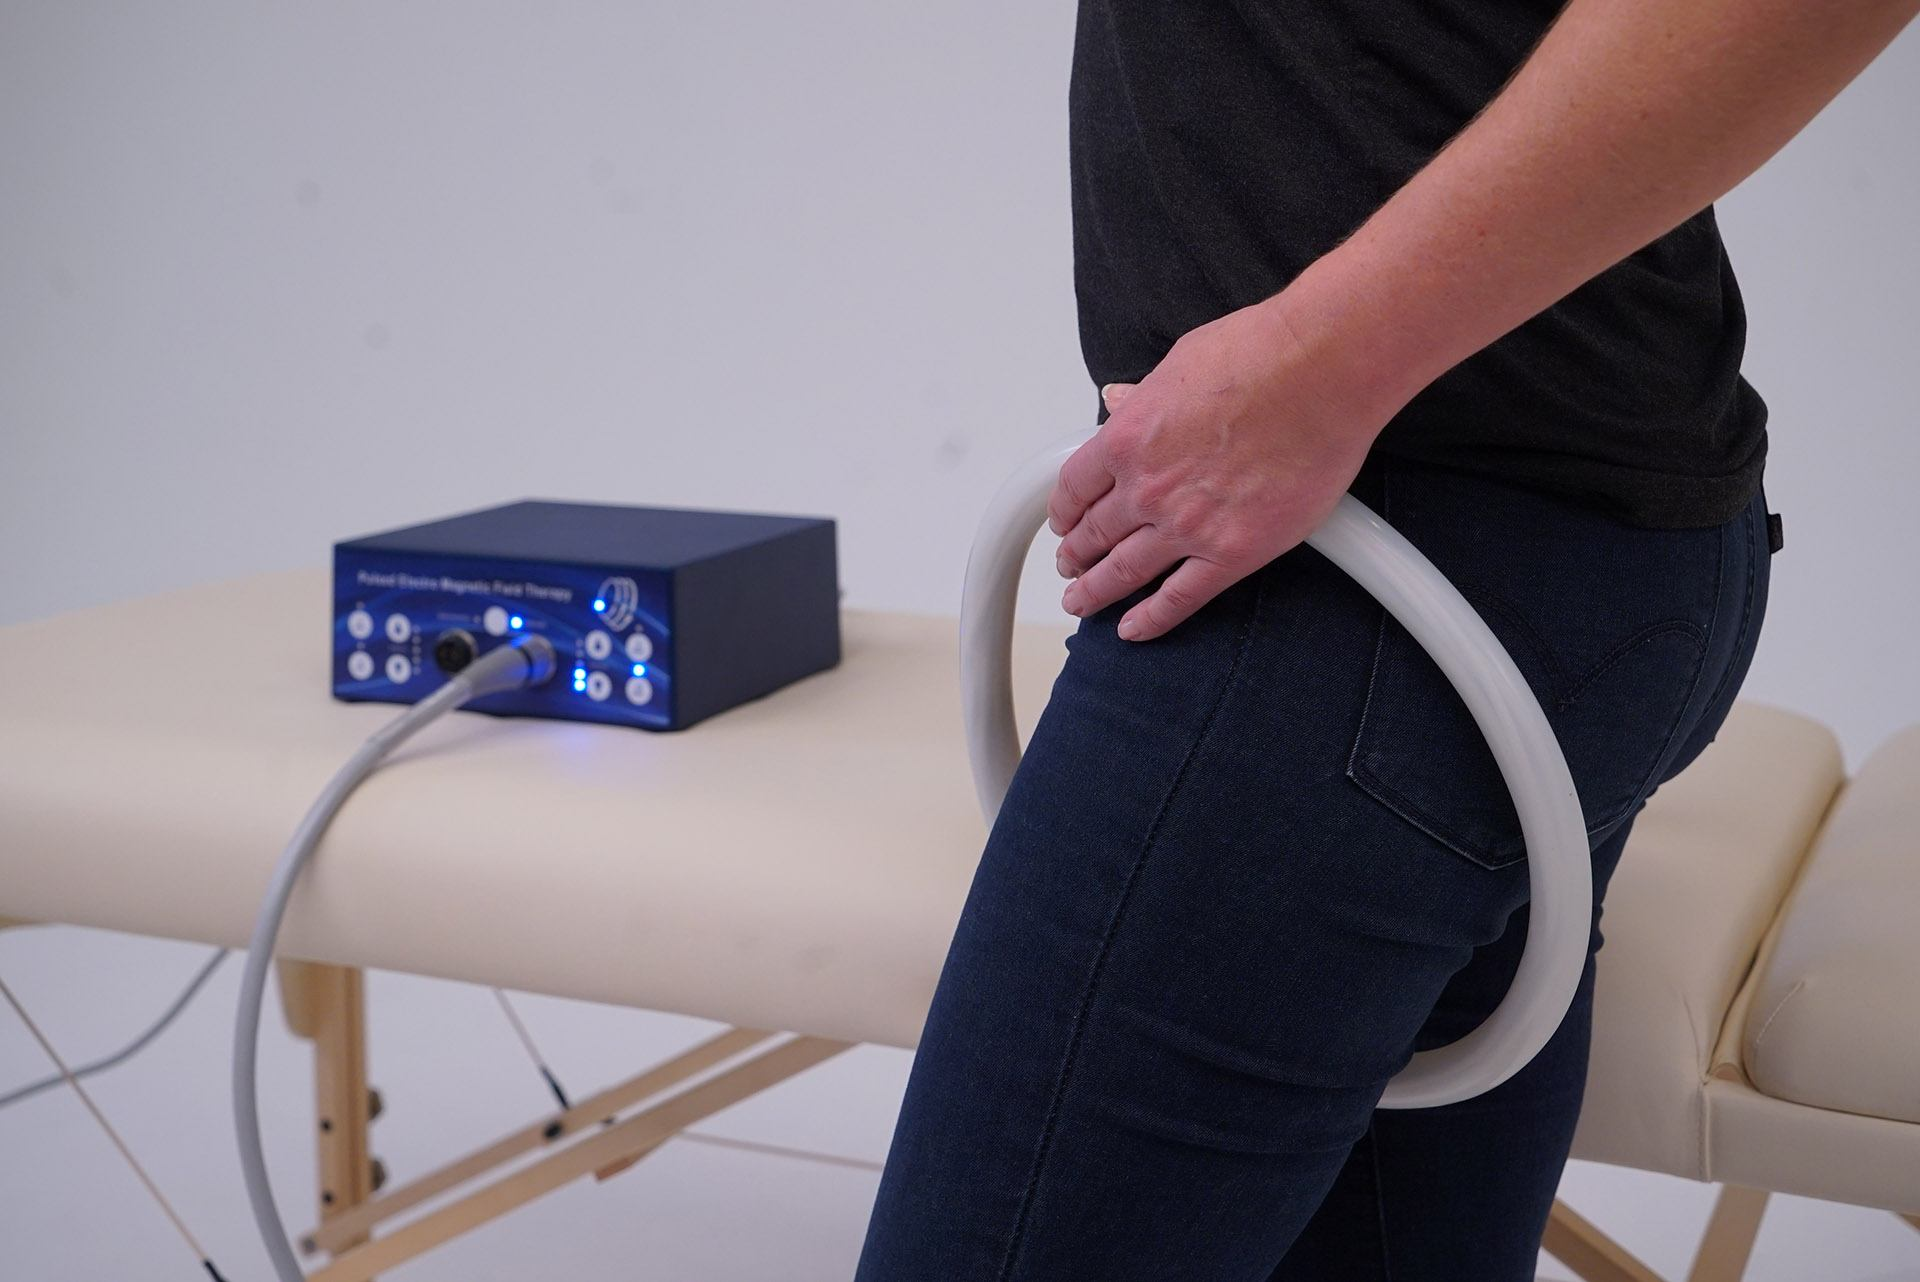 PEMF therapy upper thighs teslafit duo unit coil